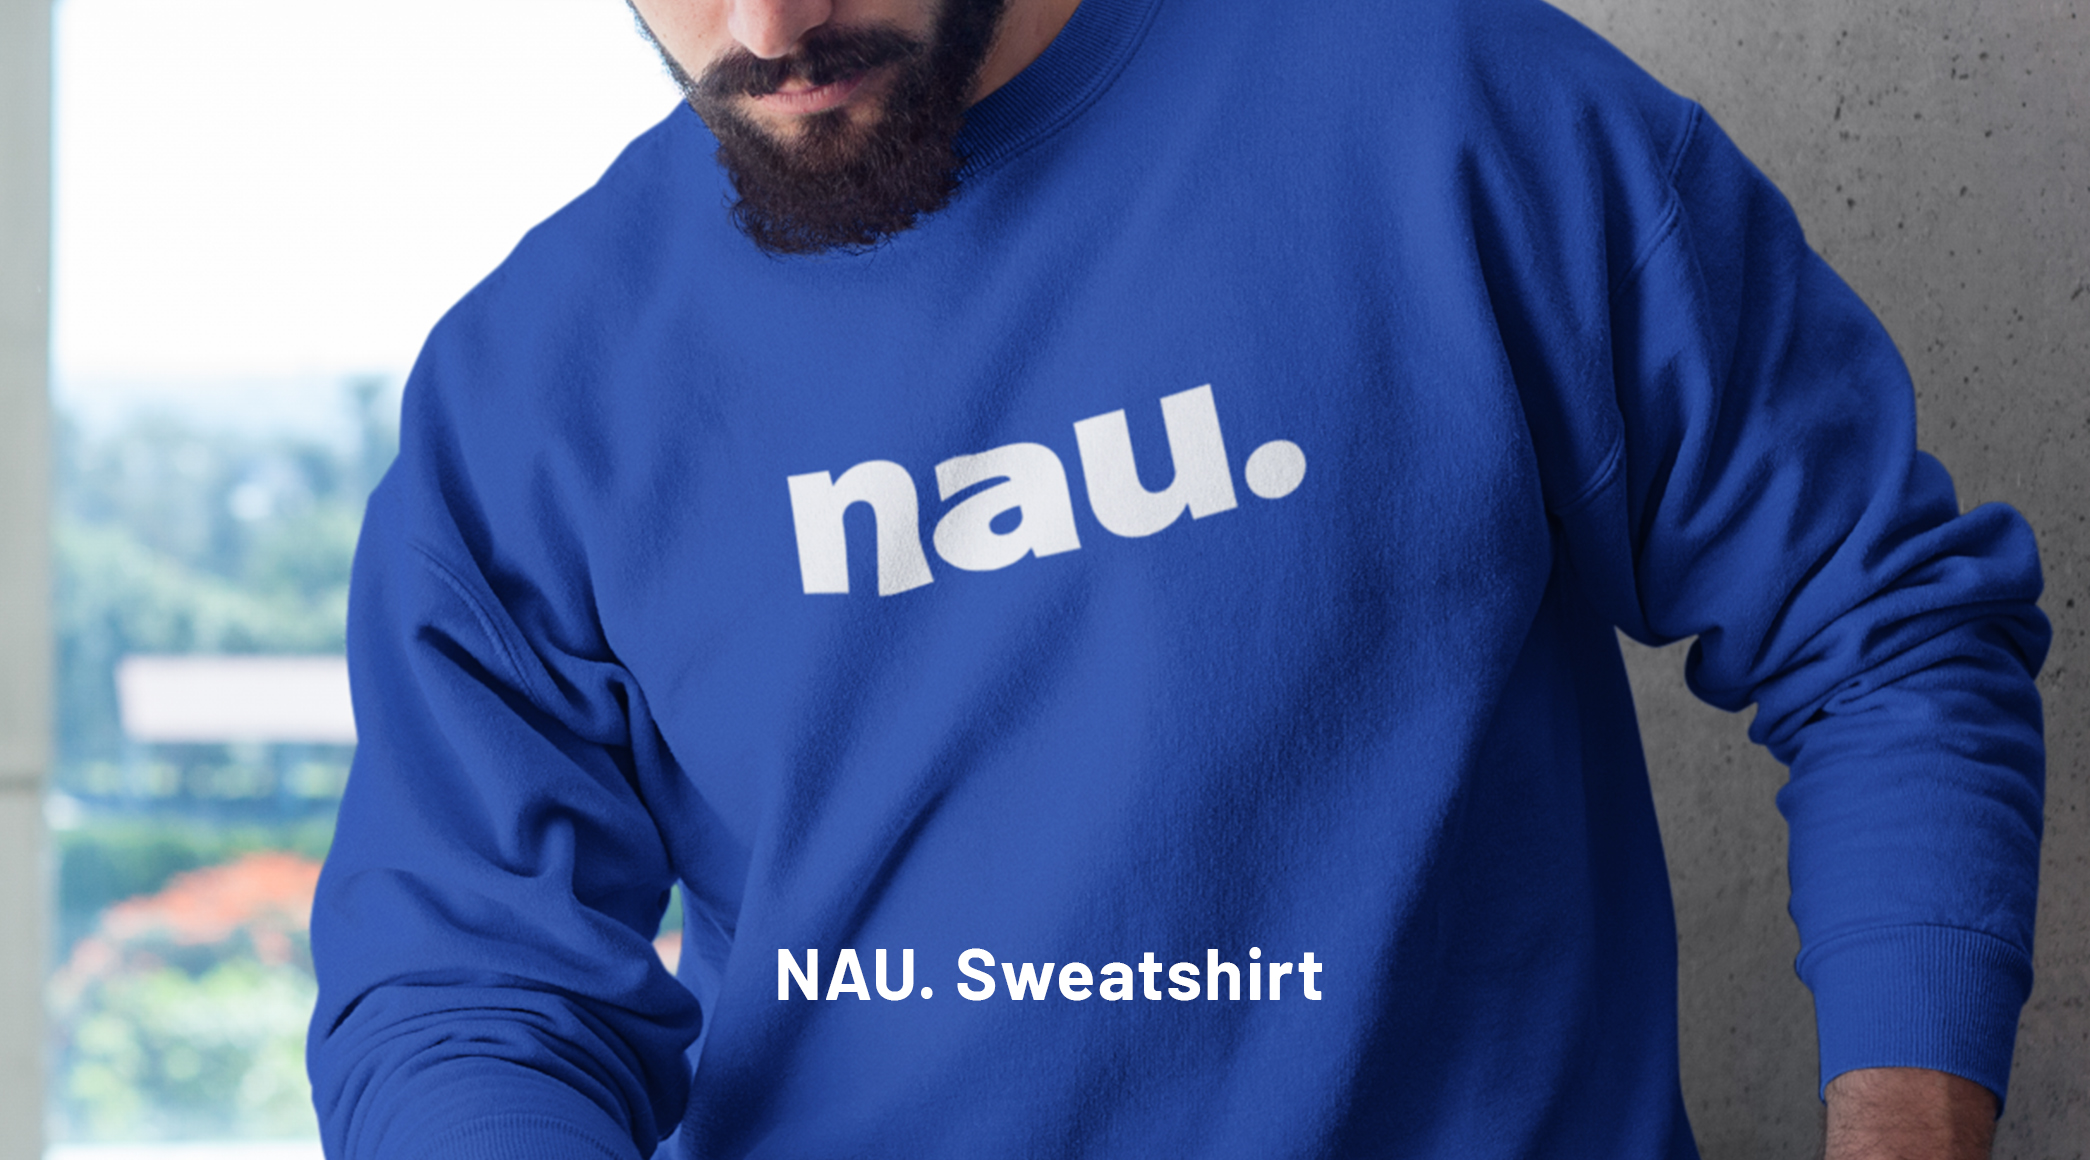 NAU Unisex organic sweatshirt is made of organic and recycled materials, and feels soft and cozy to the touch. It has set-in sleeves, 2×2 rib at collar, and a self-fabric neck tape. Order your next eco-friendly essential and hit the streets in style!  • 80% organic cotton, 20% recycled polyester • 100% organic cotton exterior • Frenchy terry knit • Set-in sleeves • 2×2 rib at collar • Self-fabric neck tape • INNES.DESIGN logo on the back collar  Actual product color may slightly vary due to photographic lighting sources or your monitor settings.